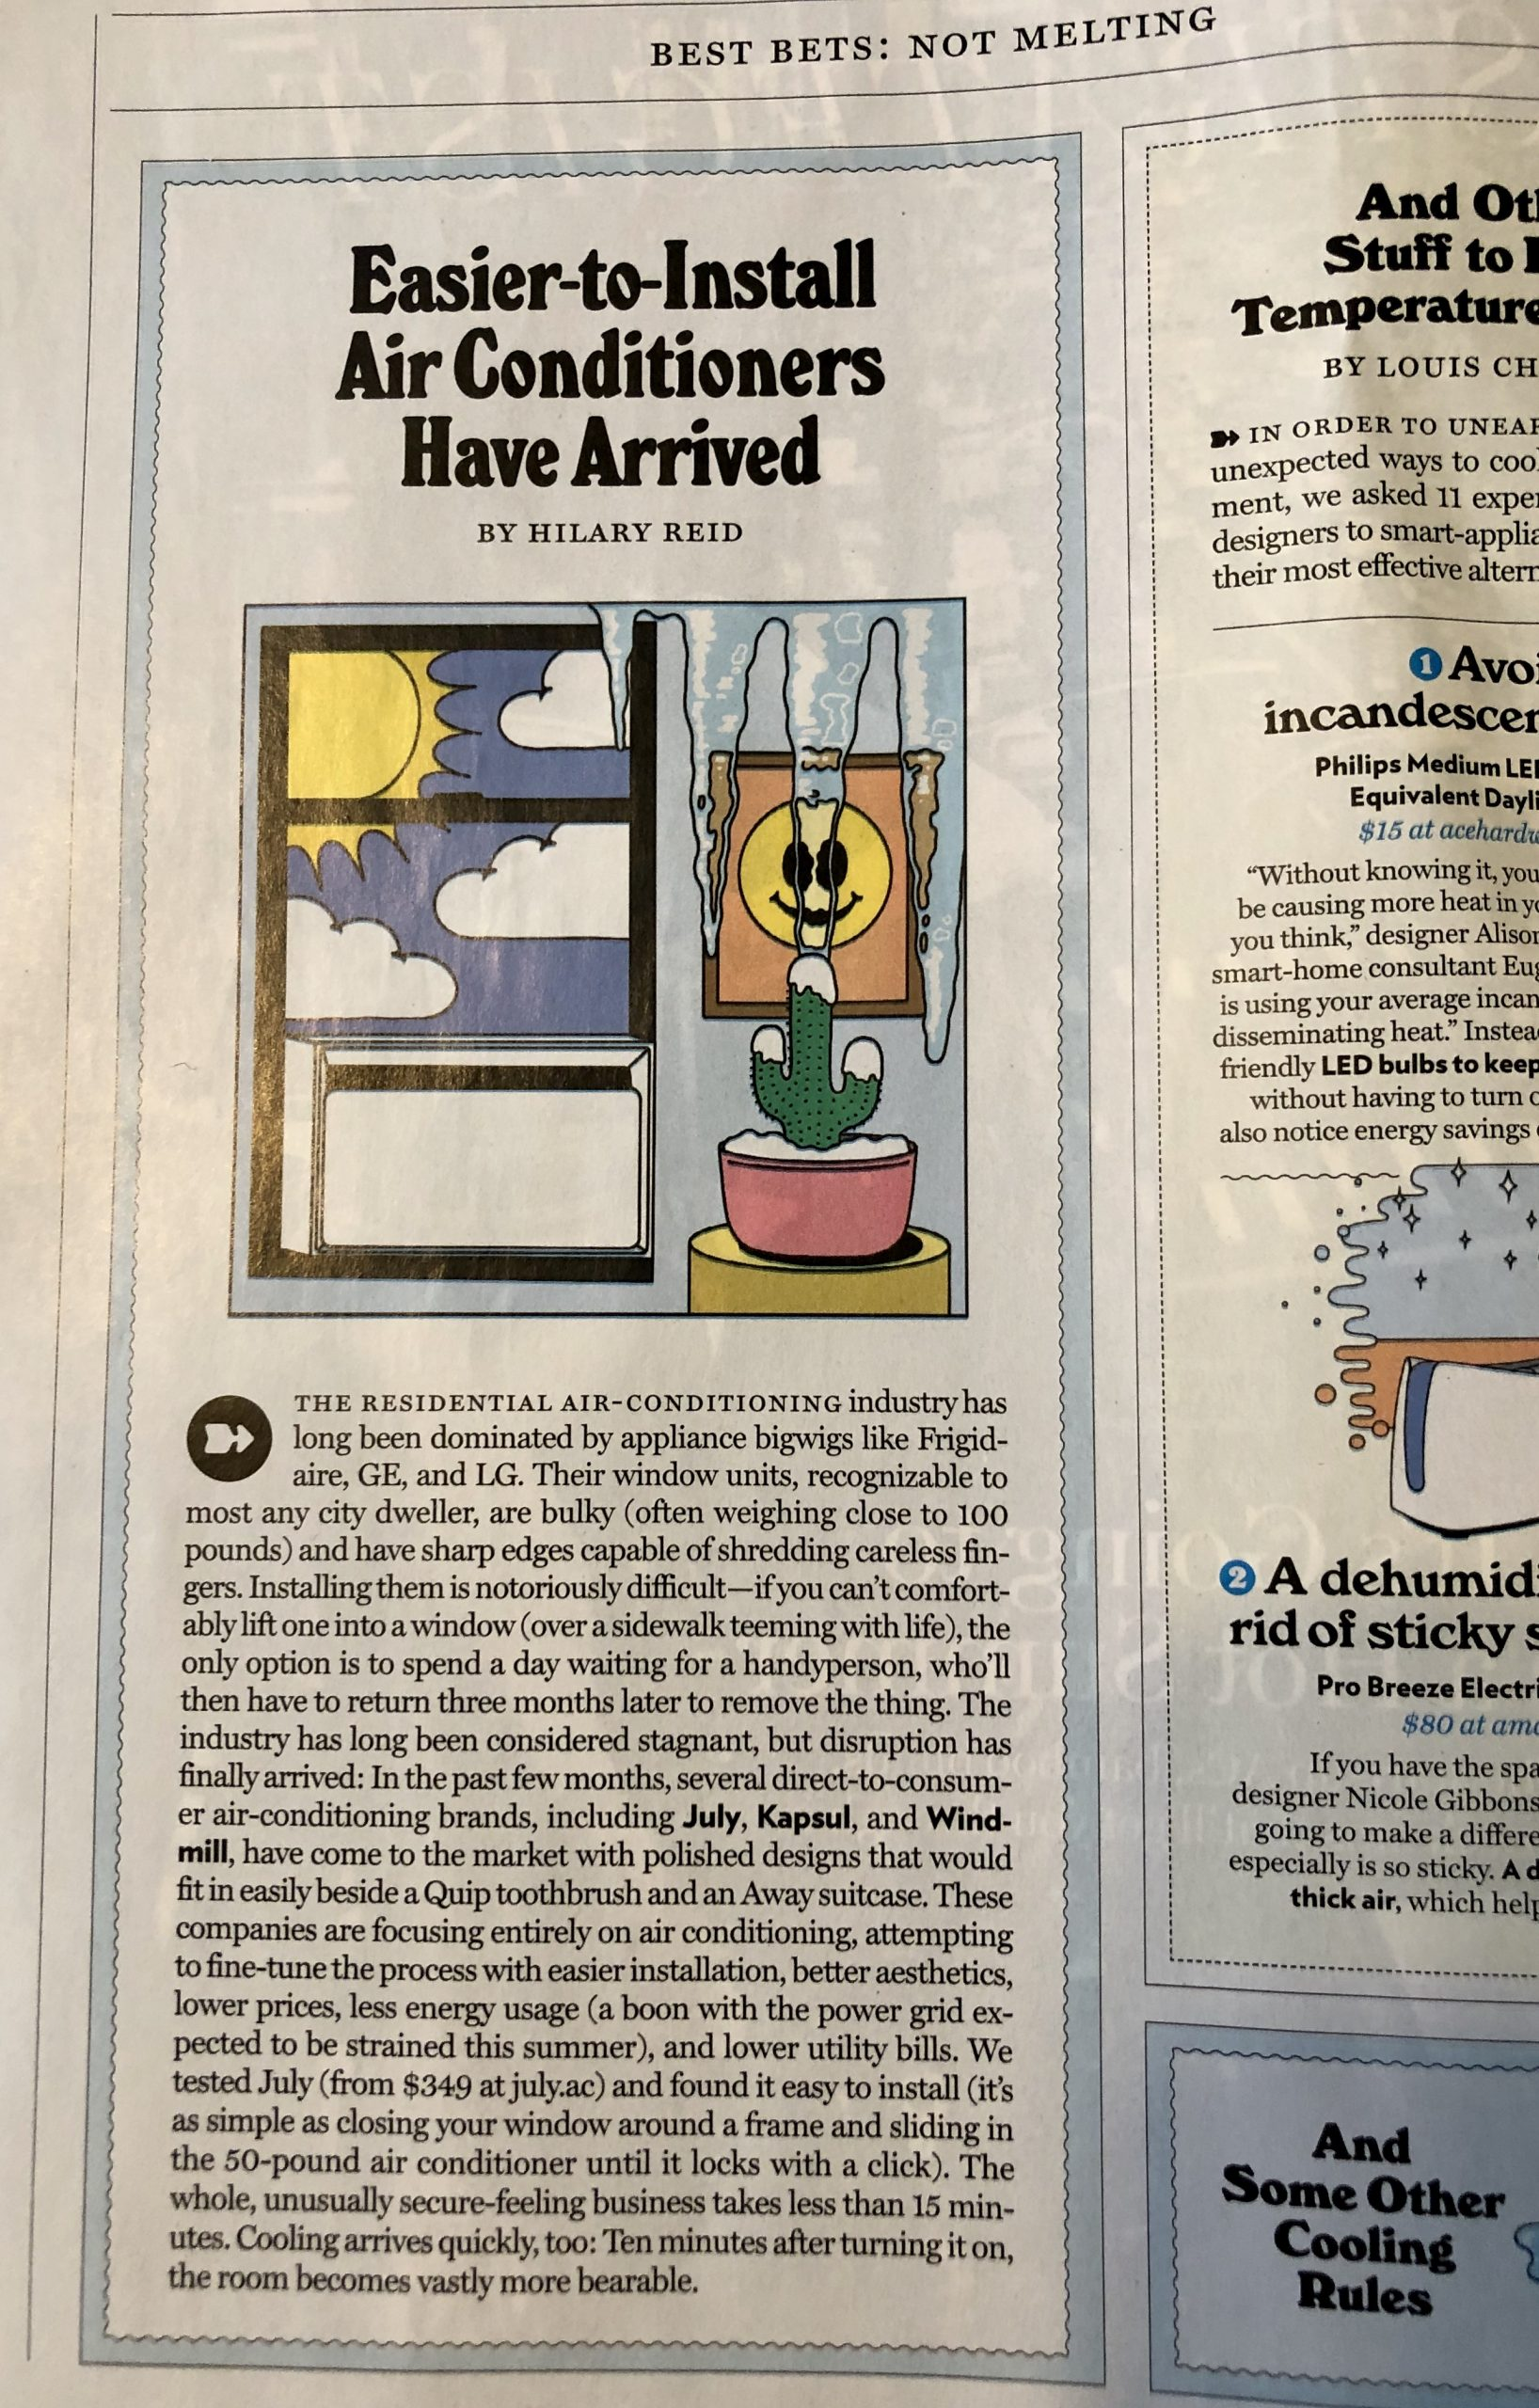 One page of the July edition of New York magazine